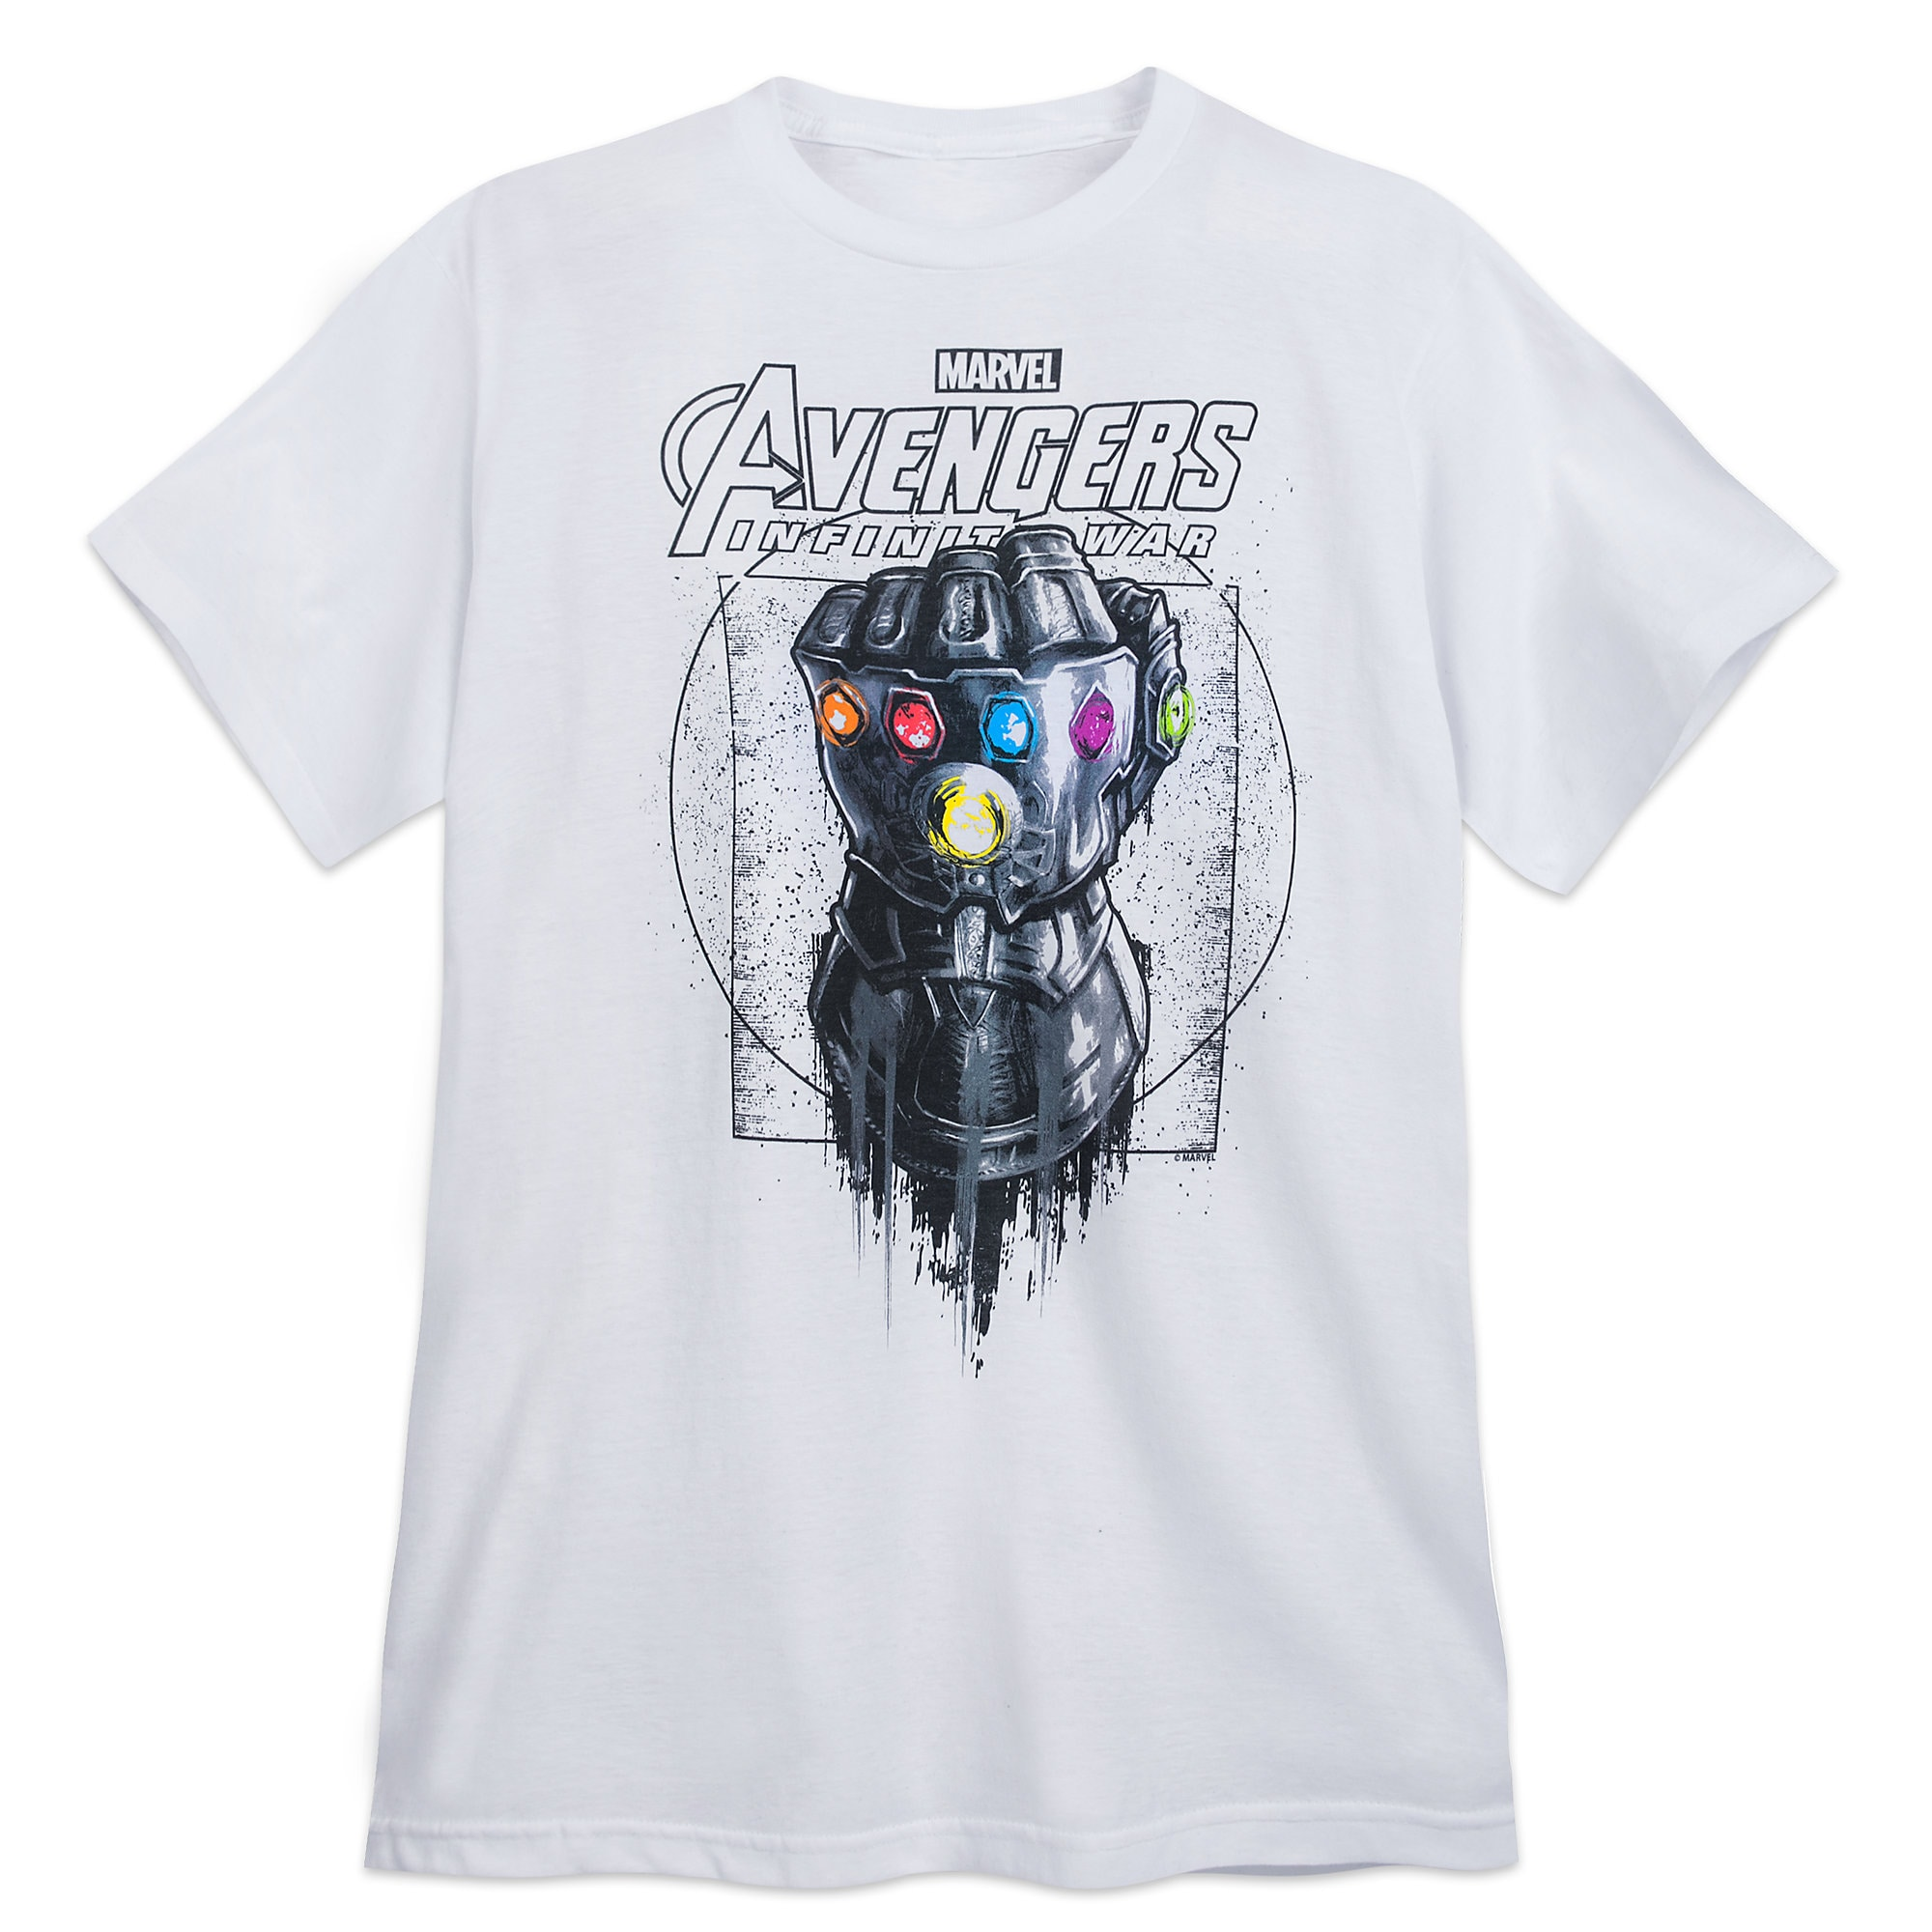 Infinity Gauntlet TShirt for Adults  Marvels Avengers Infinity War  shopDisney